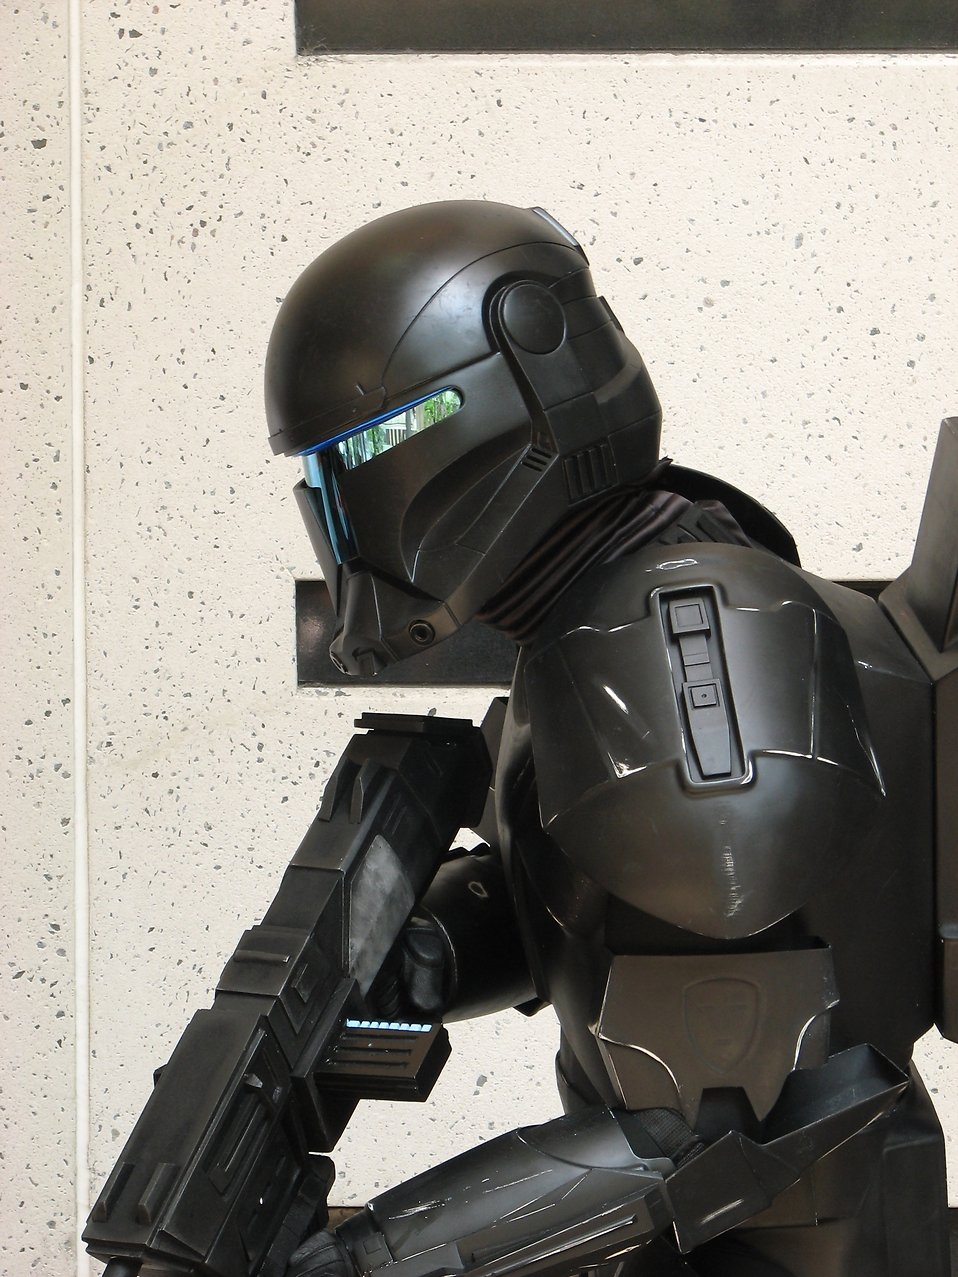 Closeup of a dark trooper costume at Dragoncon 2008 : Free Stock Photo